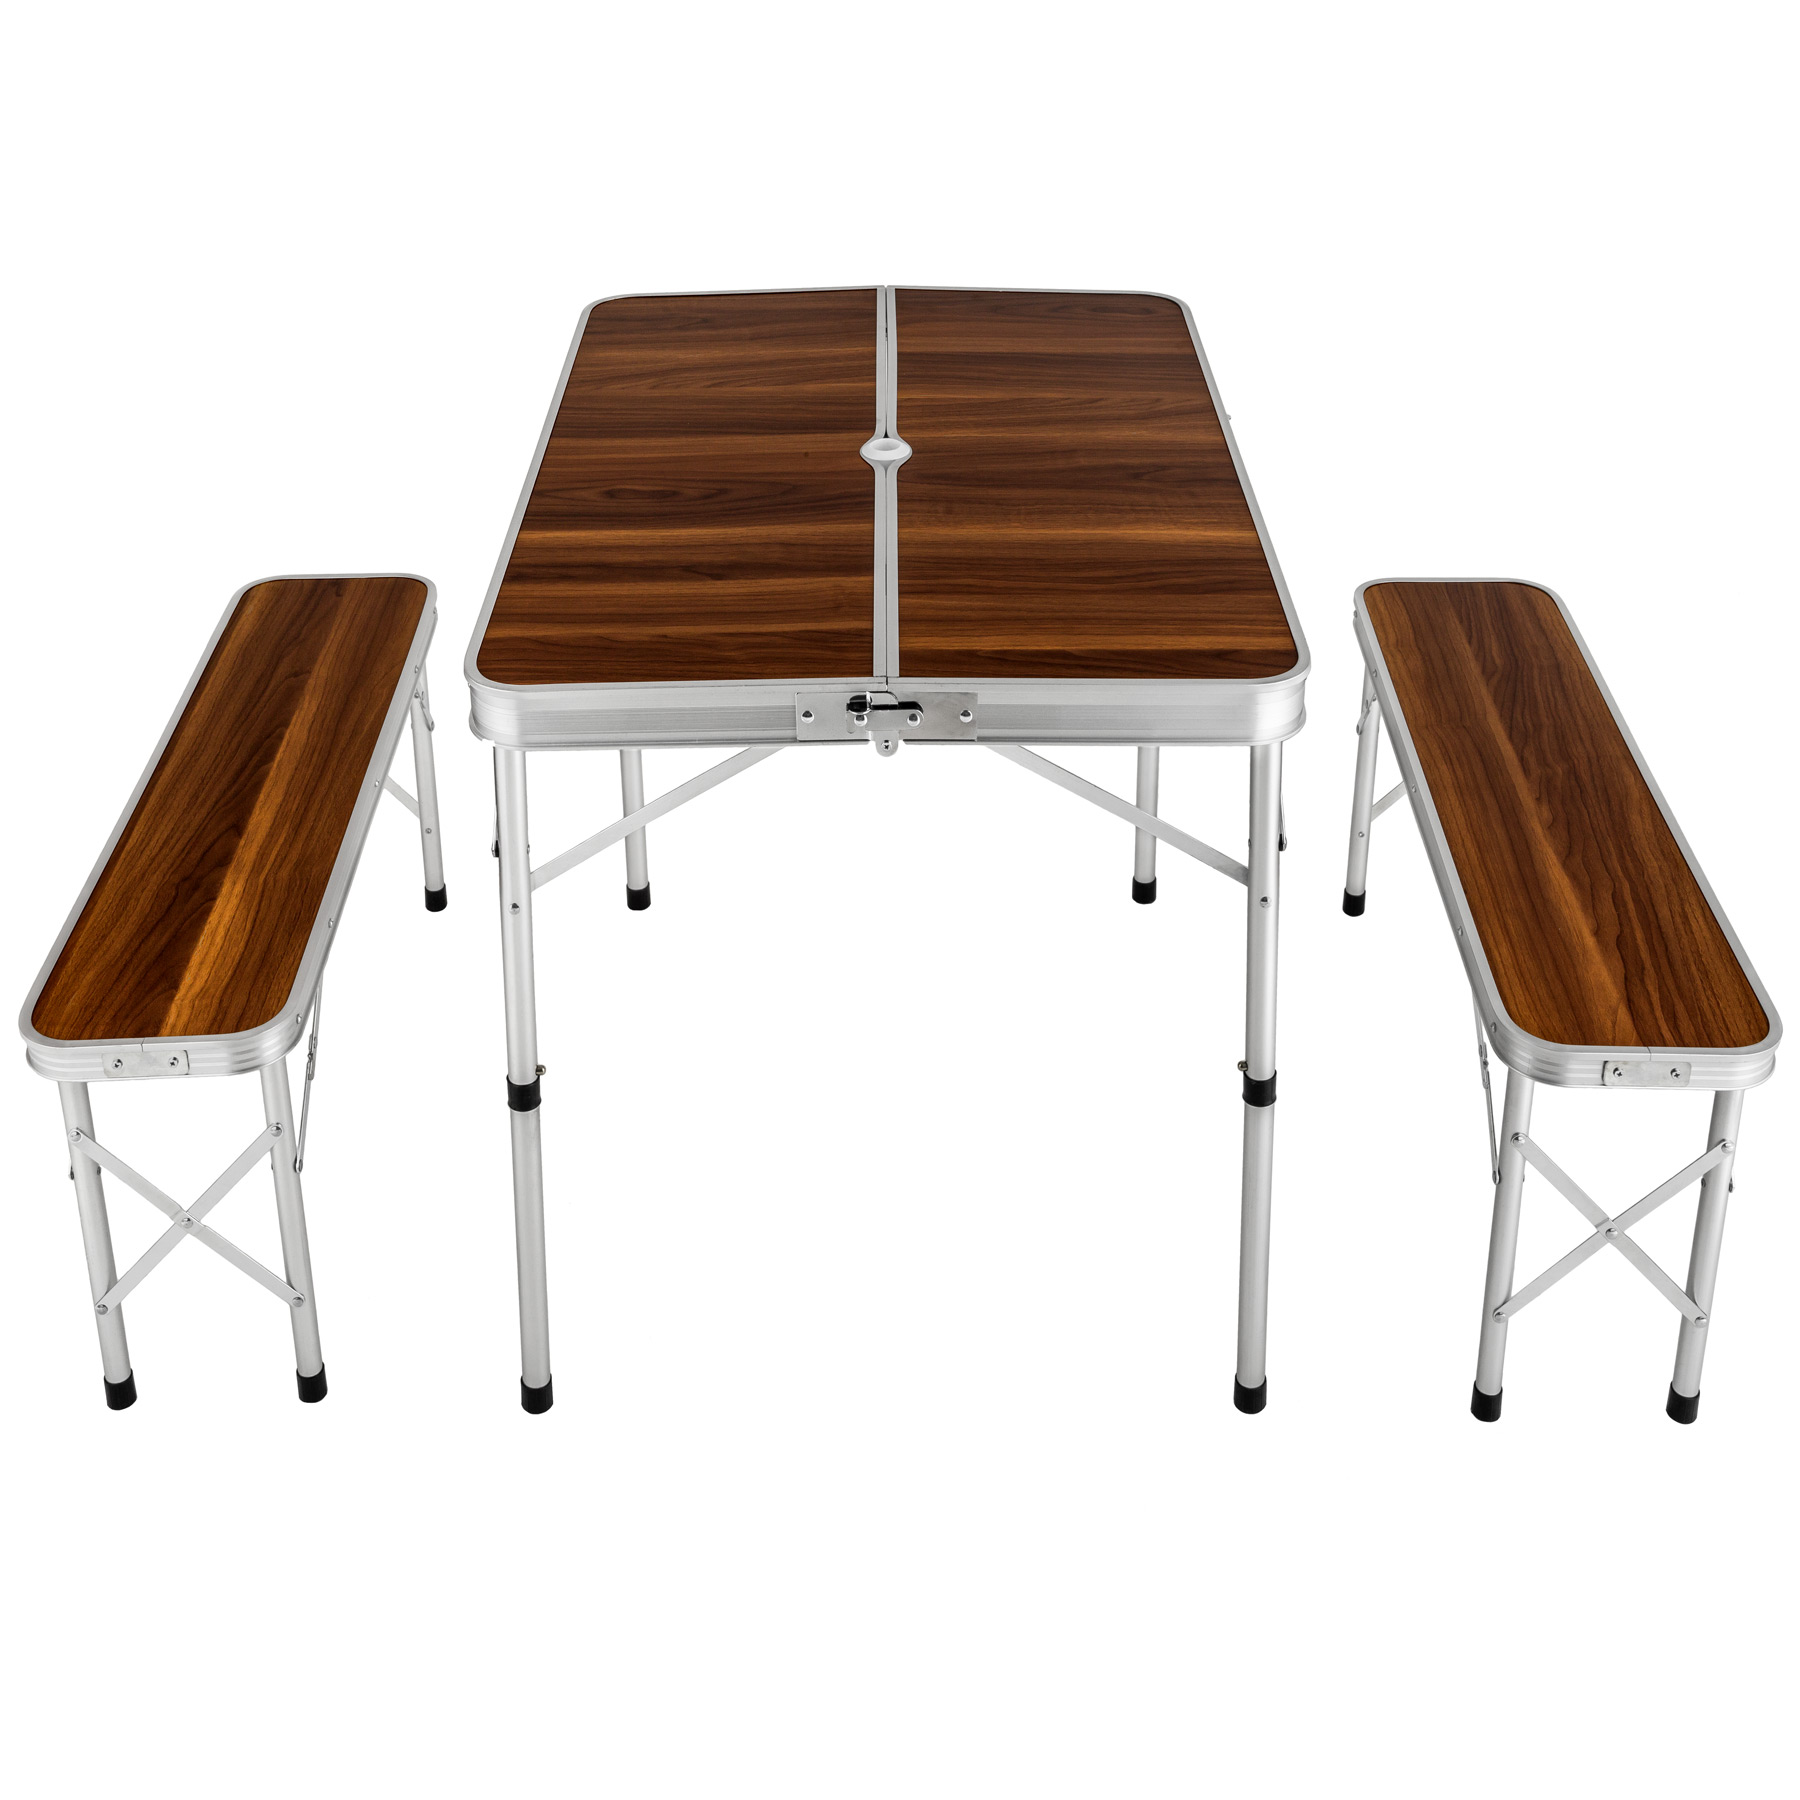 eensemble table pliante valise avec 2 bancs camping aluminium pique nique jardin ebay. Black Bedroom Furniture Sets. Home Design Ideas